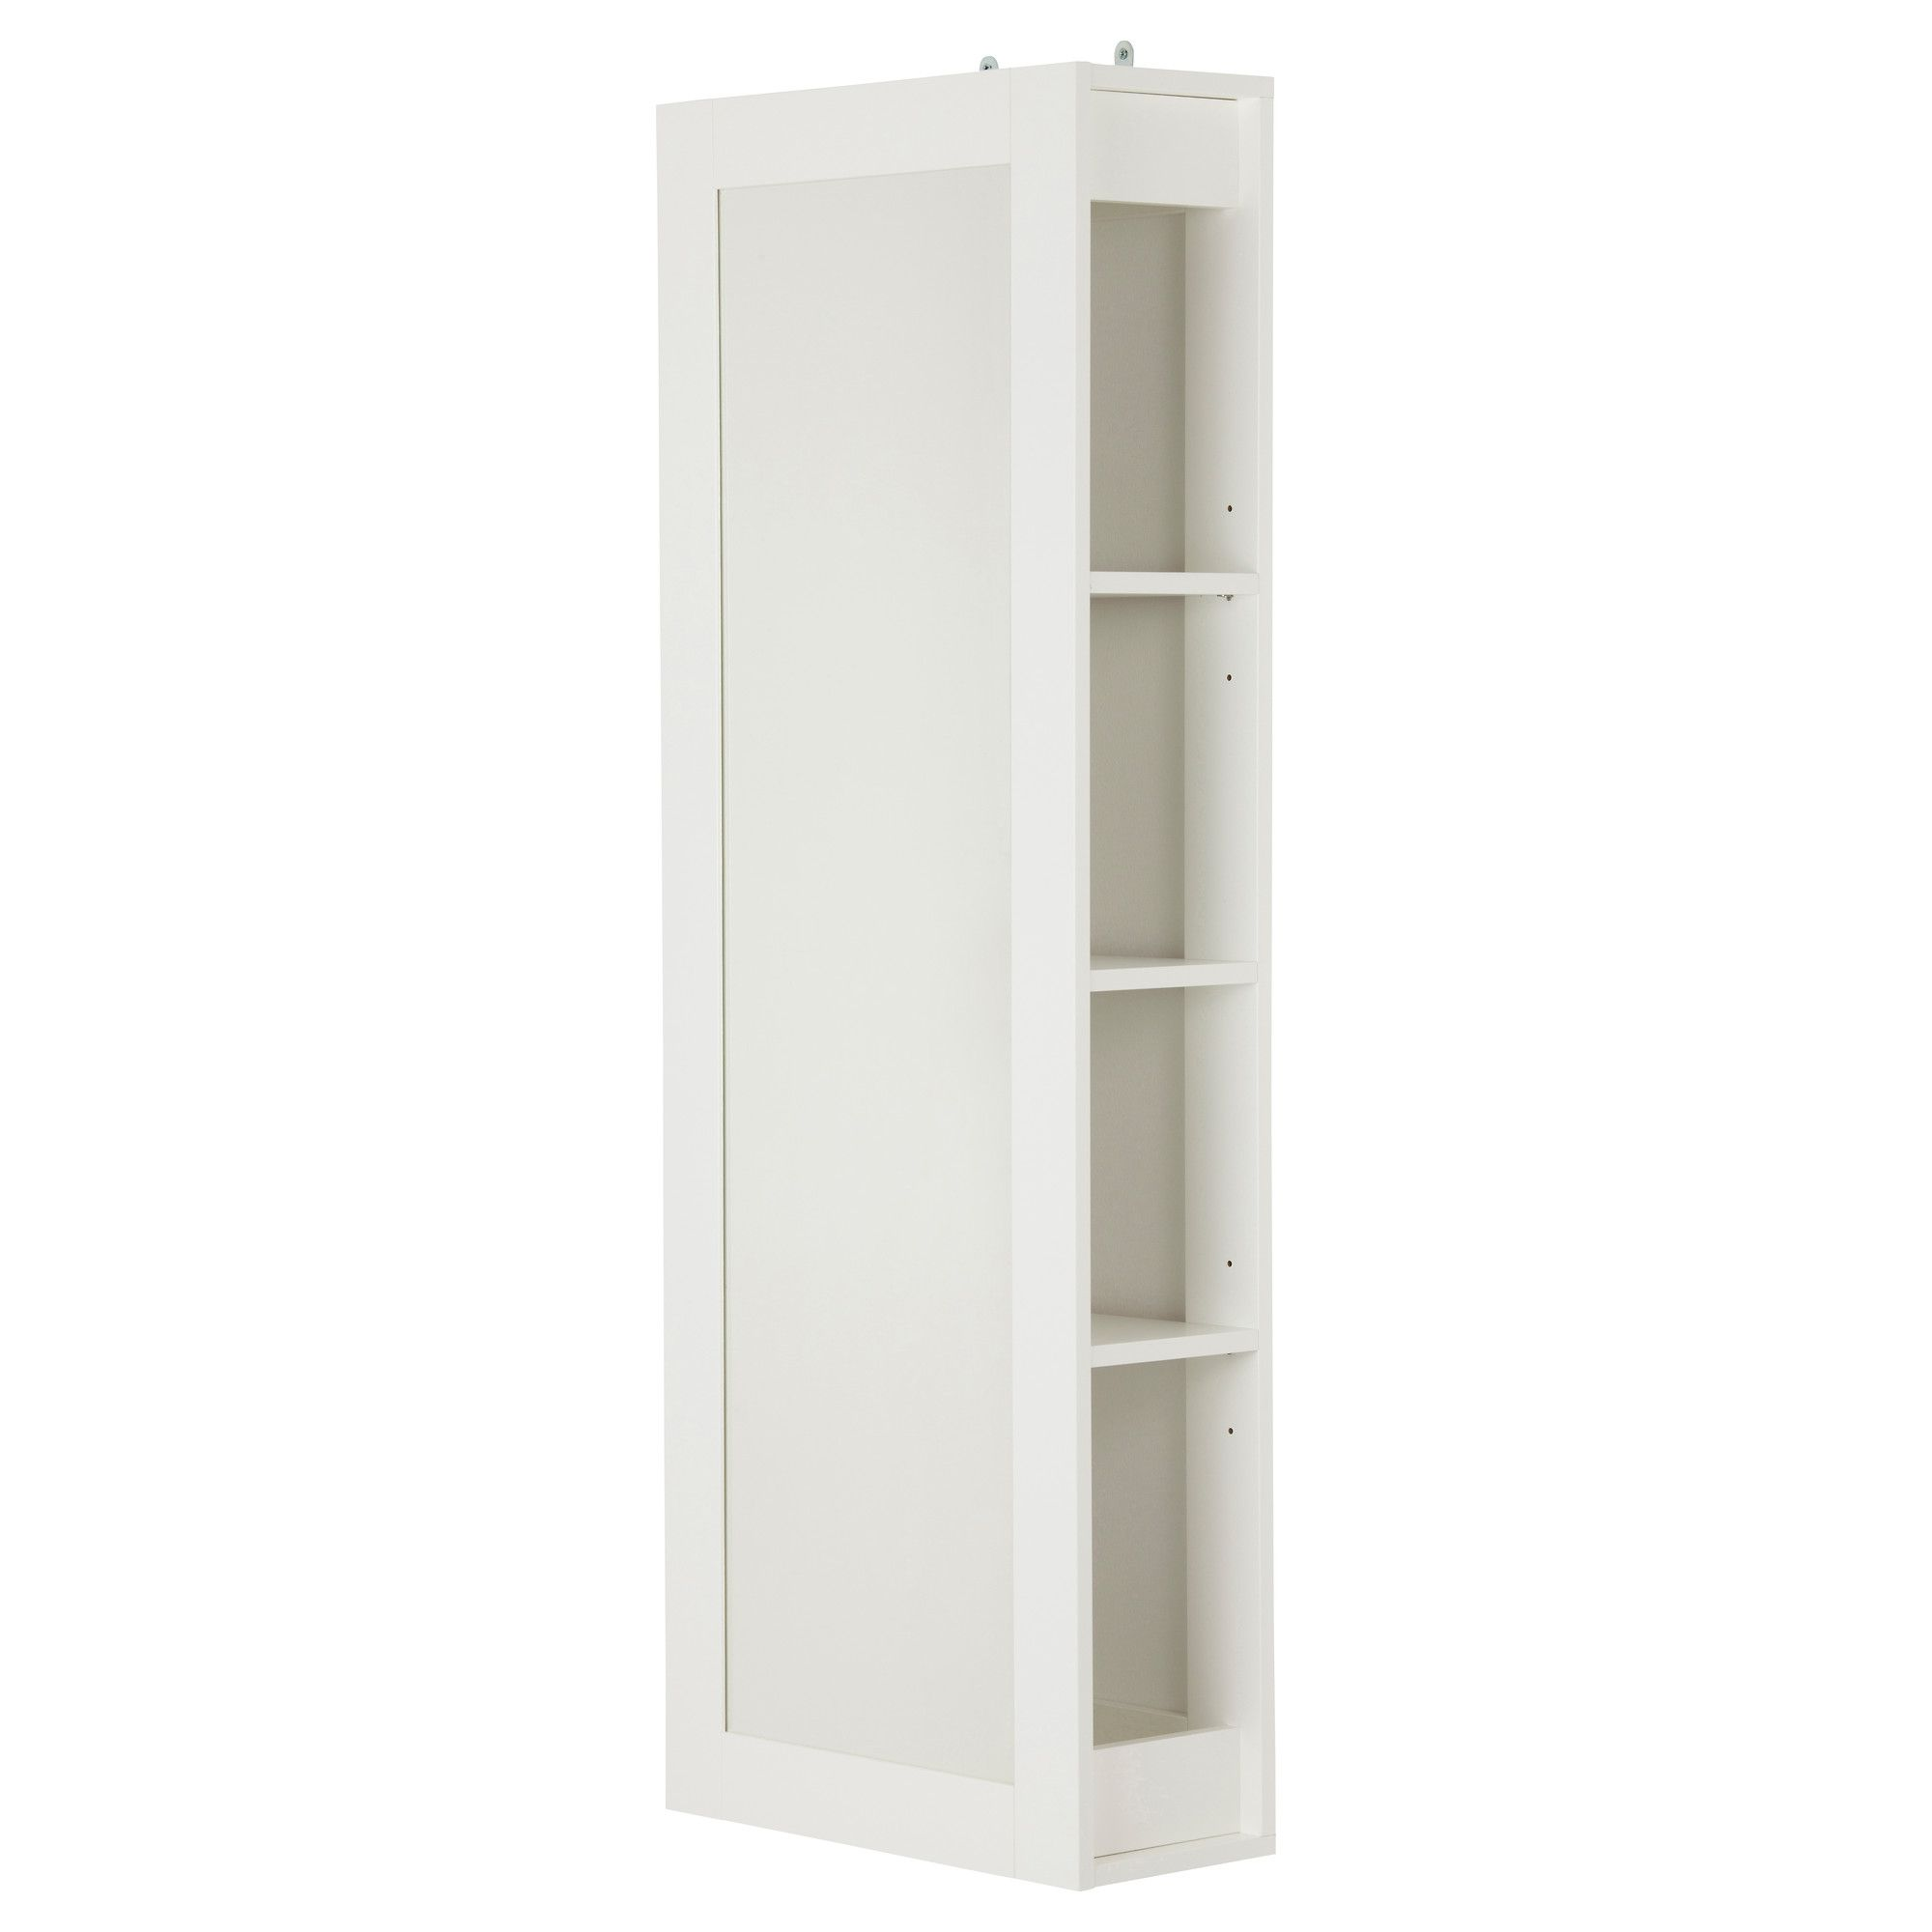 Ikea Brimnes Vitrine Brimnes Mirror With Storage Ikea Would Be Great To Stash Things